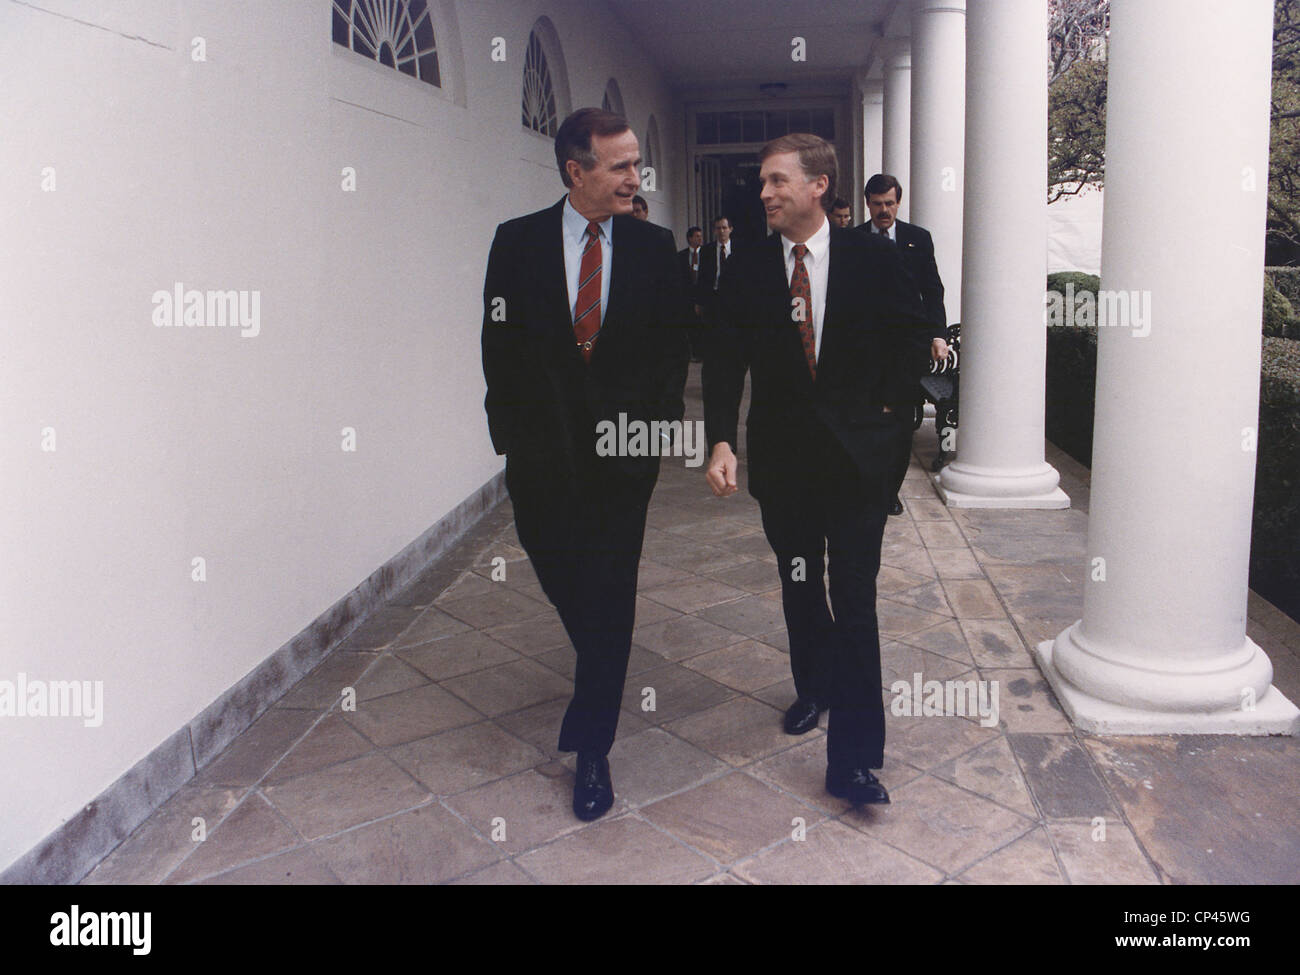 west wing office space layout circa 1990. President George H.W. Bush Walks Along The West Wing Colonnade With His Vice-President Dan Quayle. Ca. 1990. Office Space Layout Circa 1990